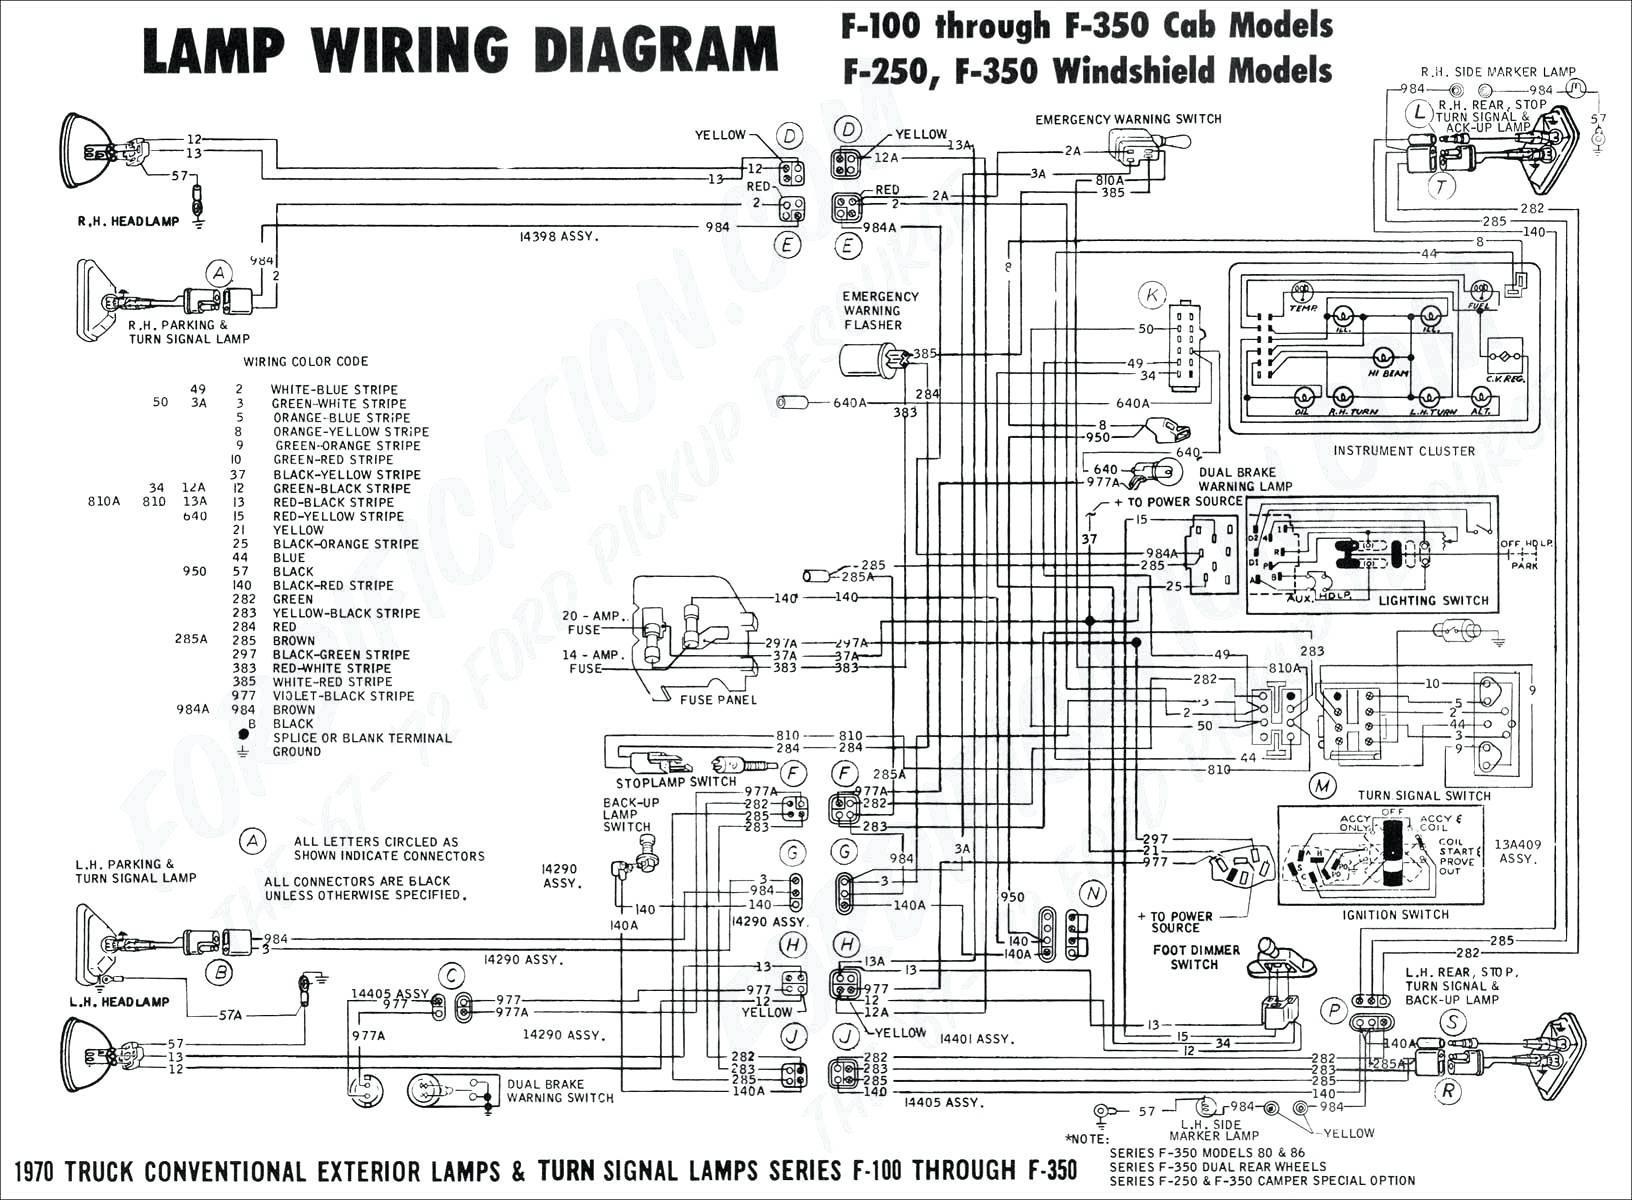 1996 ford ranger parts diagram fleetwood motorhome wiring